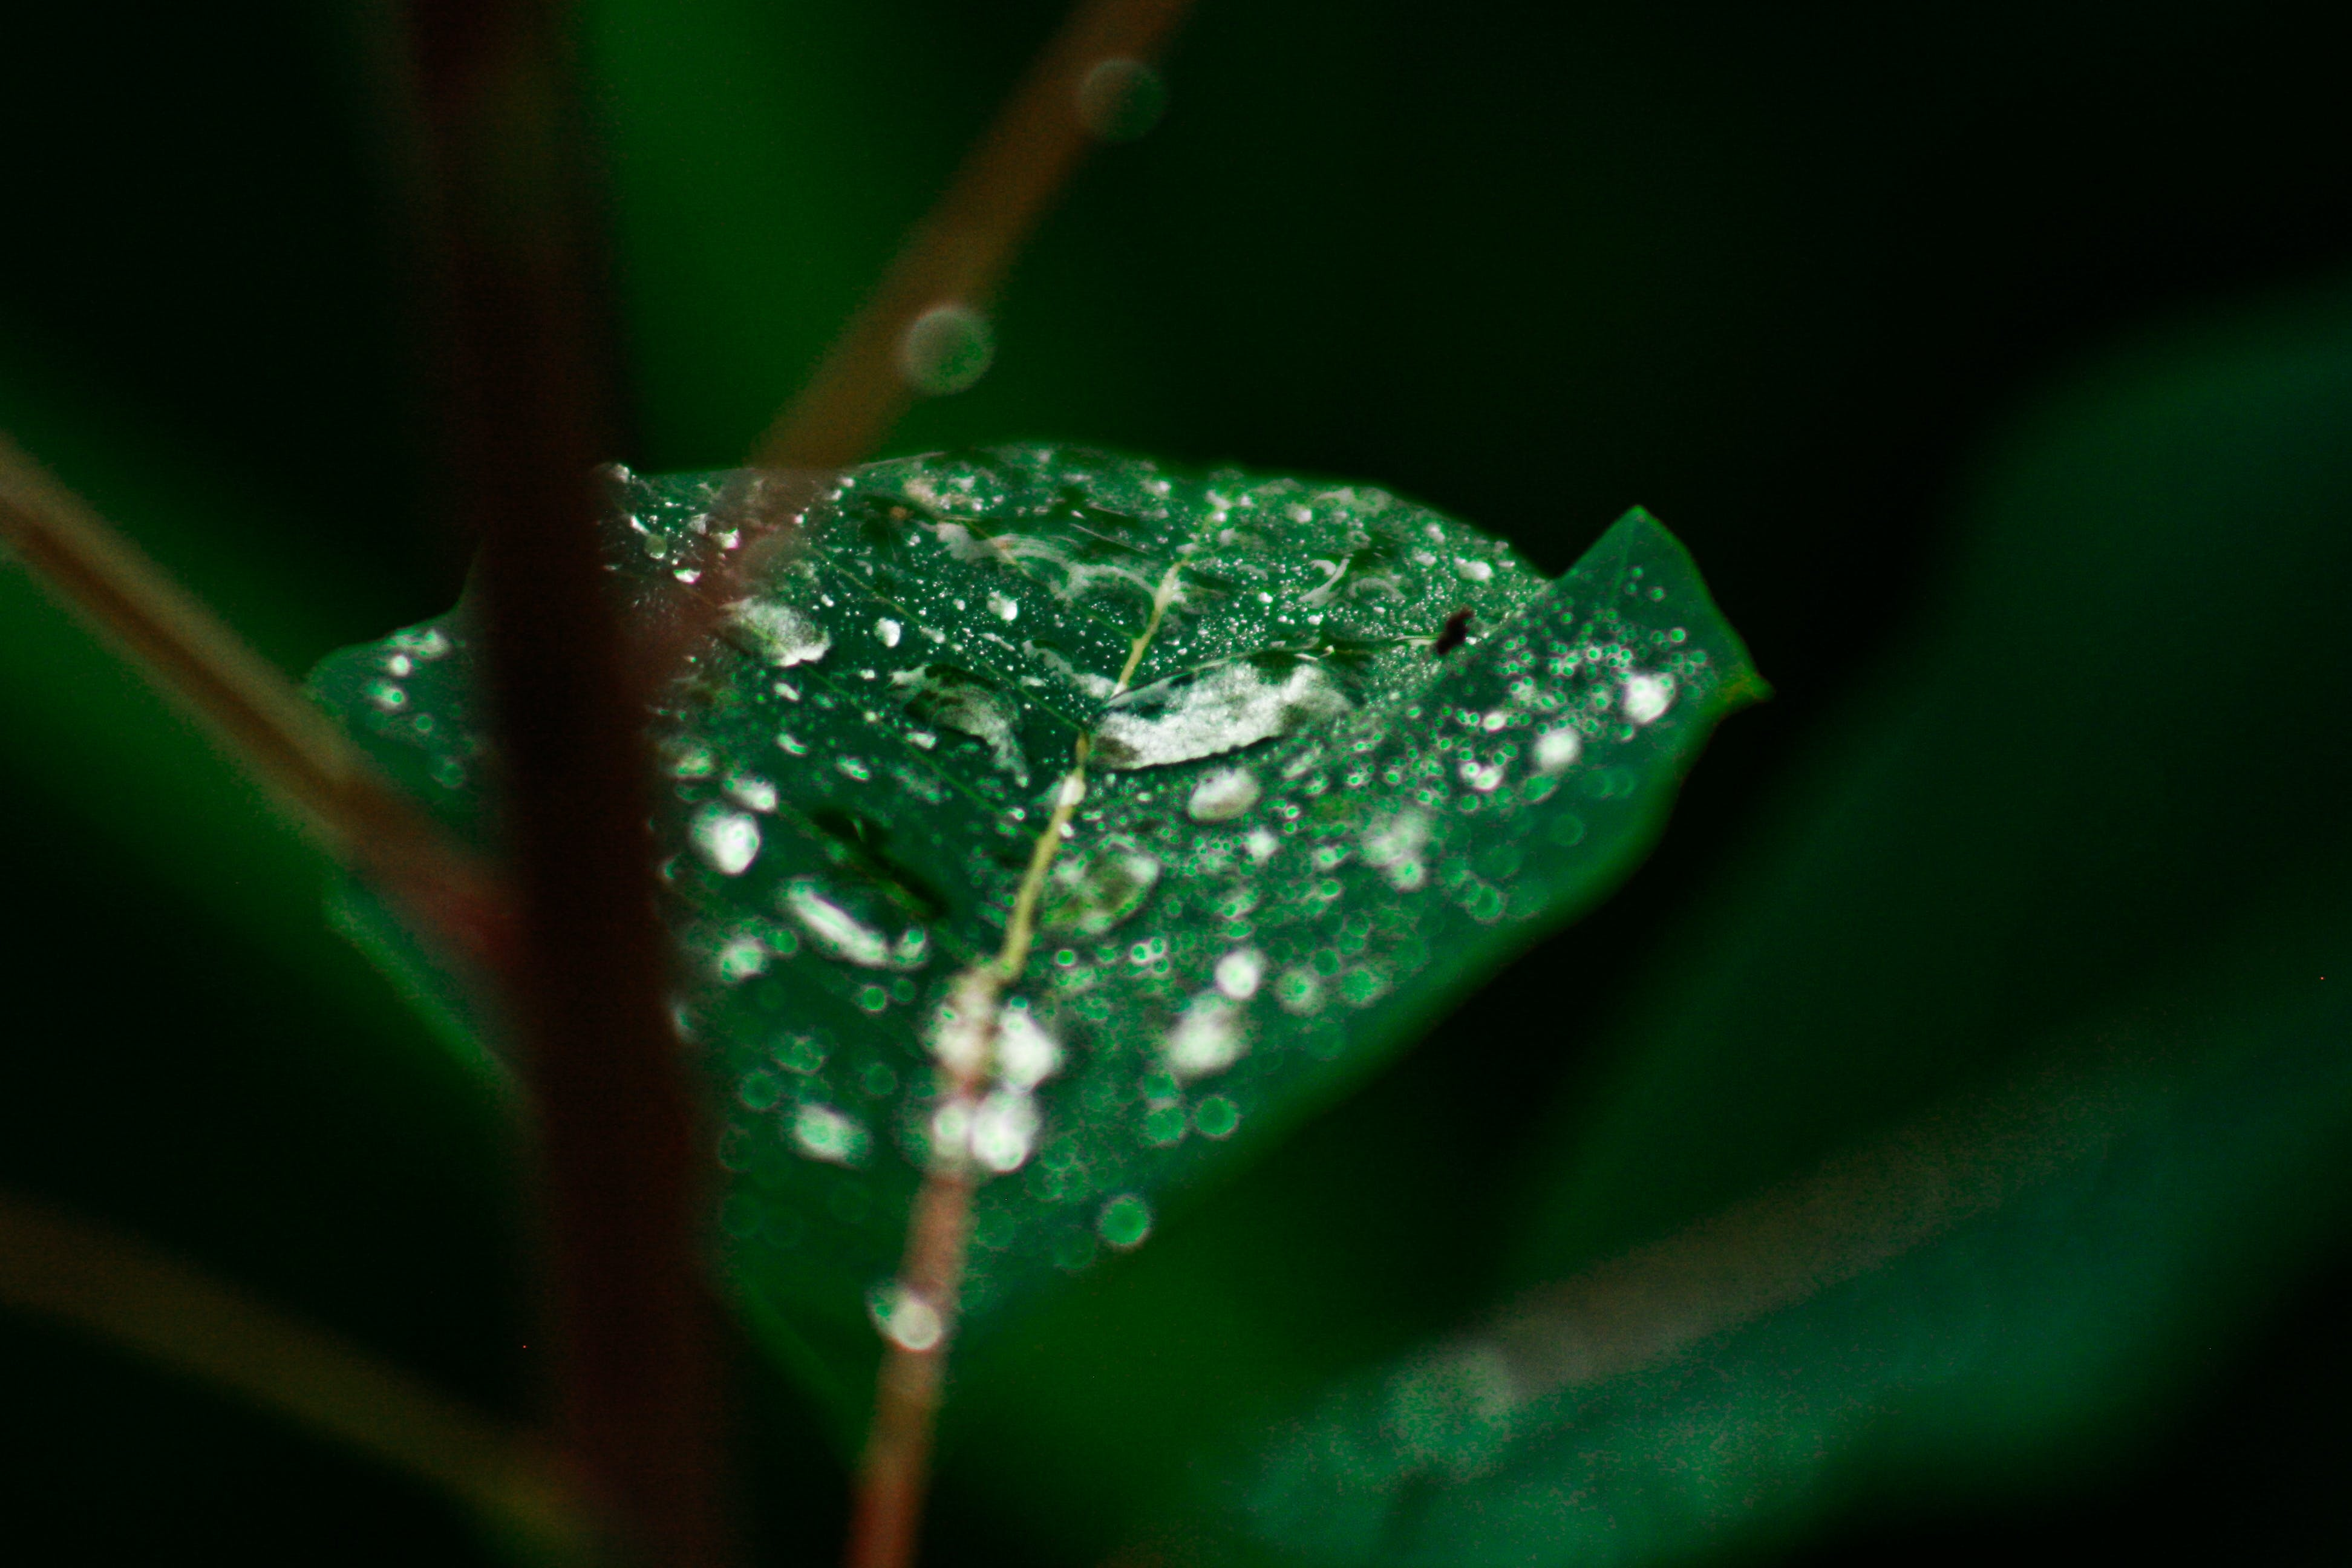 Selective Photo Of Green Leaf Plant With Raindrops